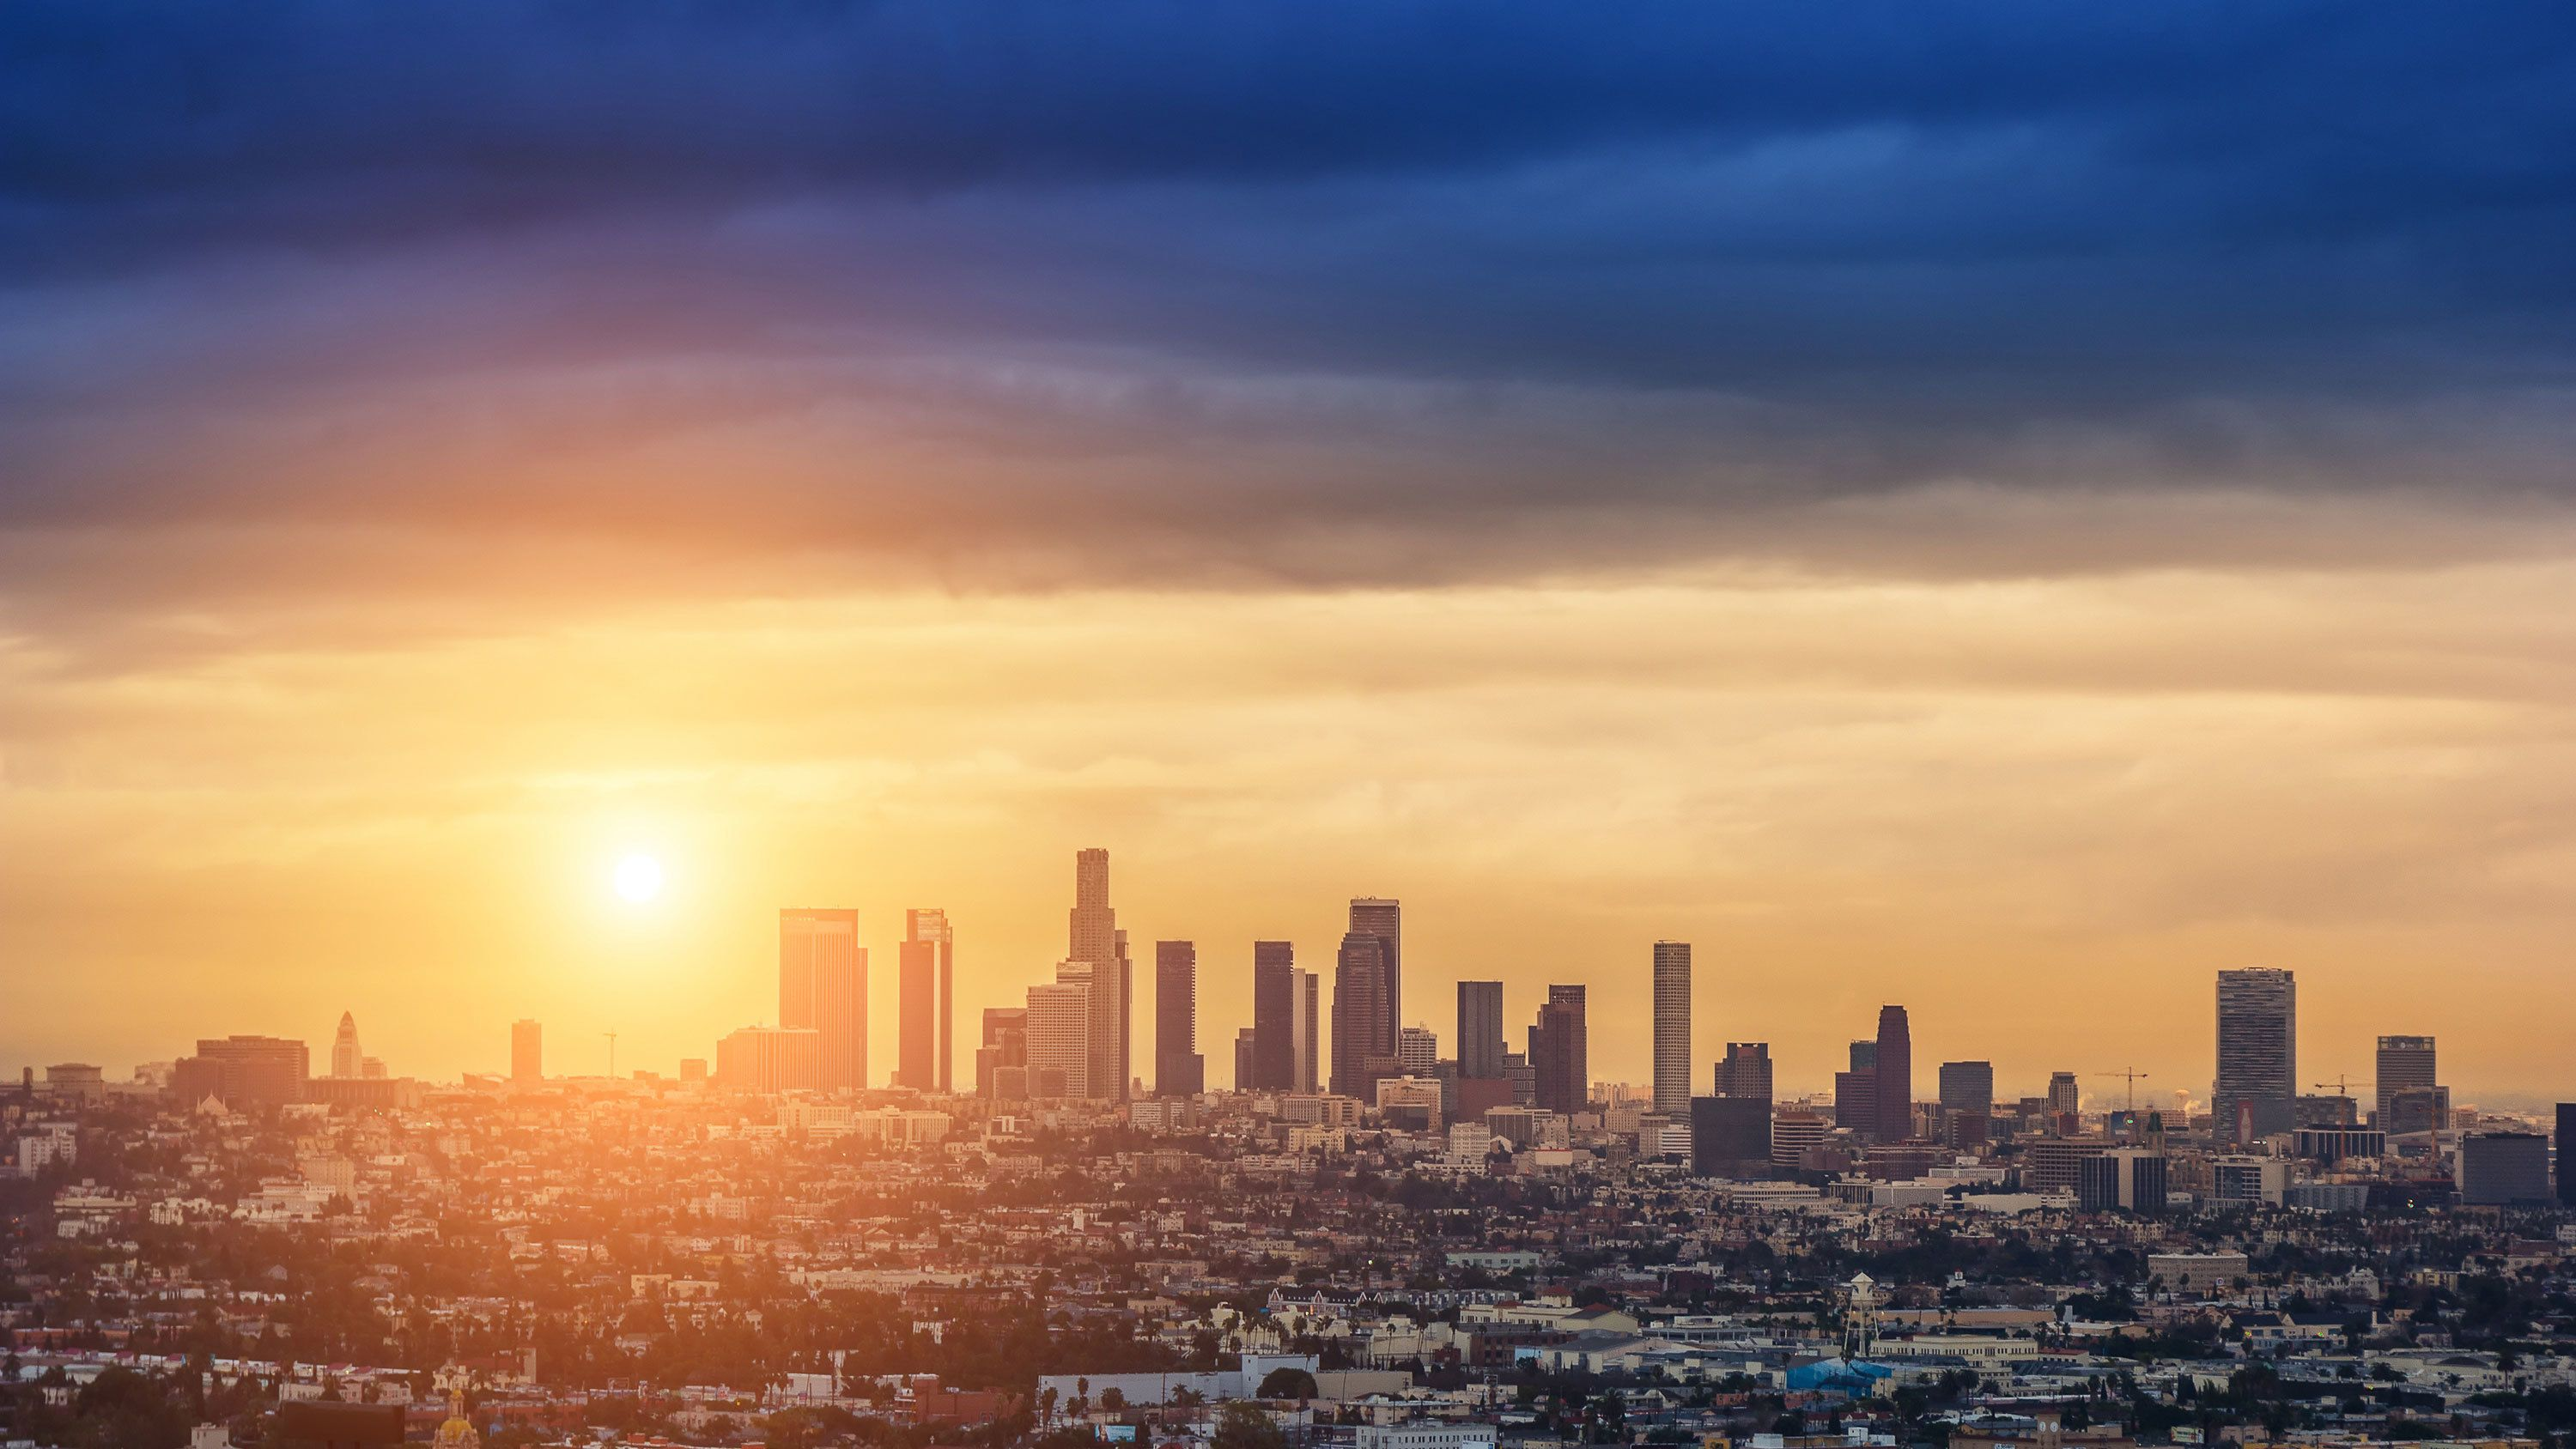 Distant view of the Los Angeles skyline at sunset